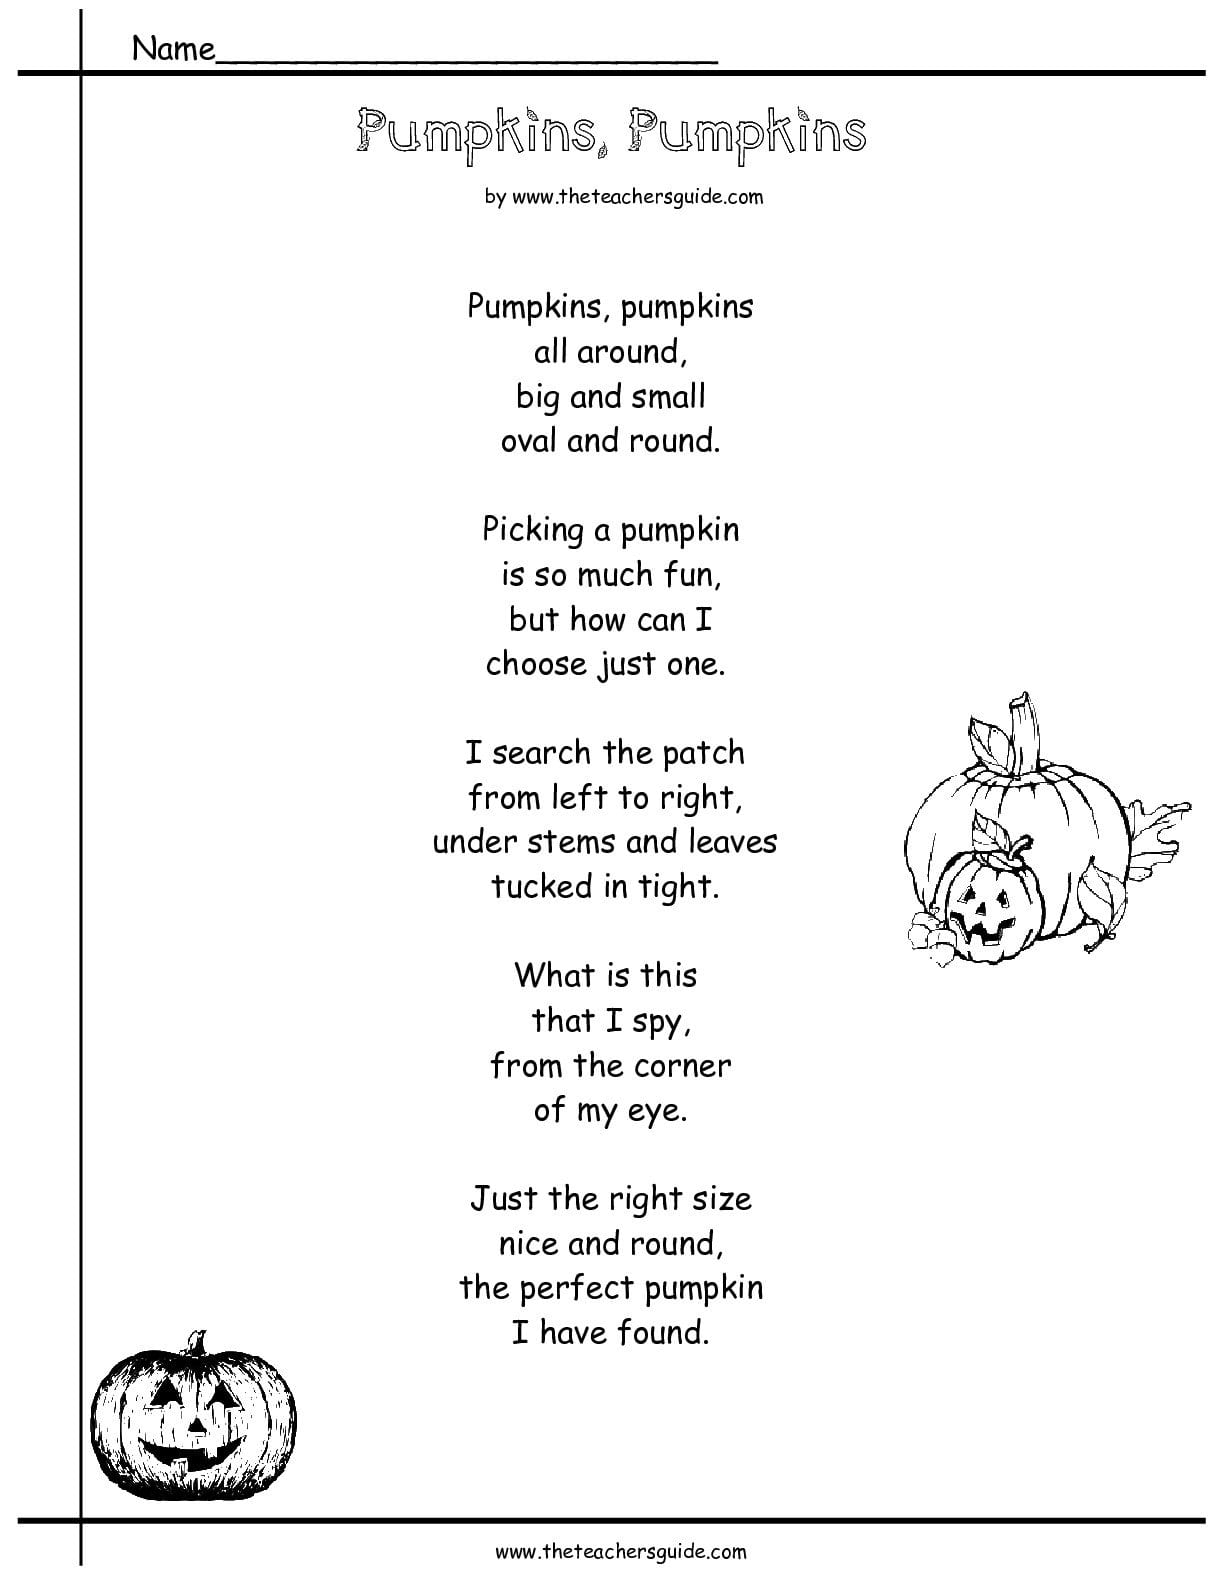 Poetry Comprehension Worksheets From The Teacher's Guide Together With Poetry Comprehension Worksheets